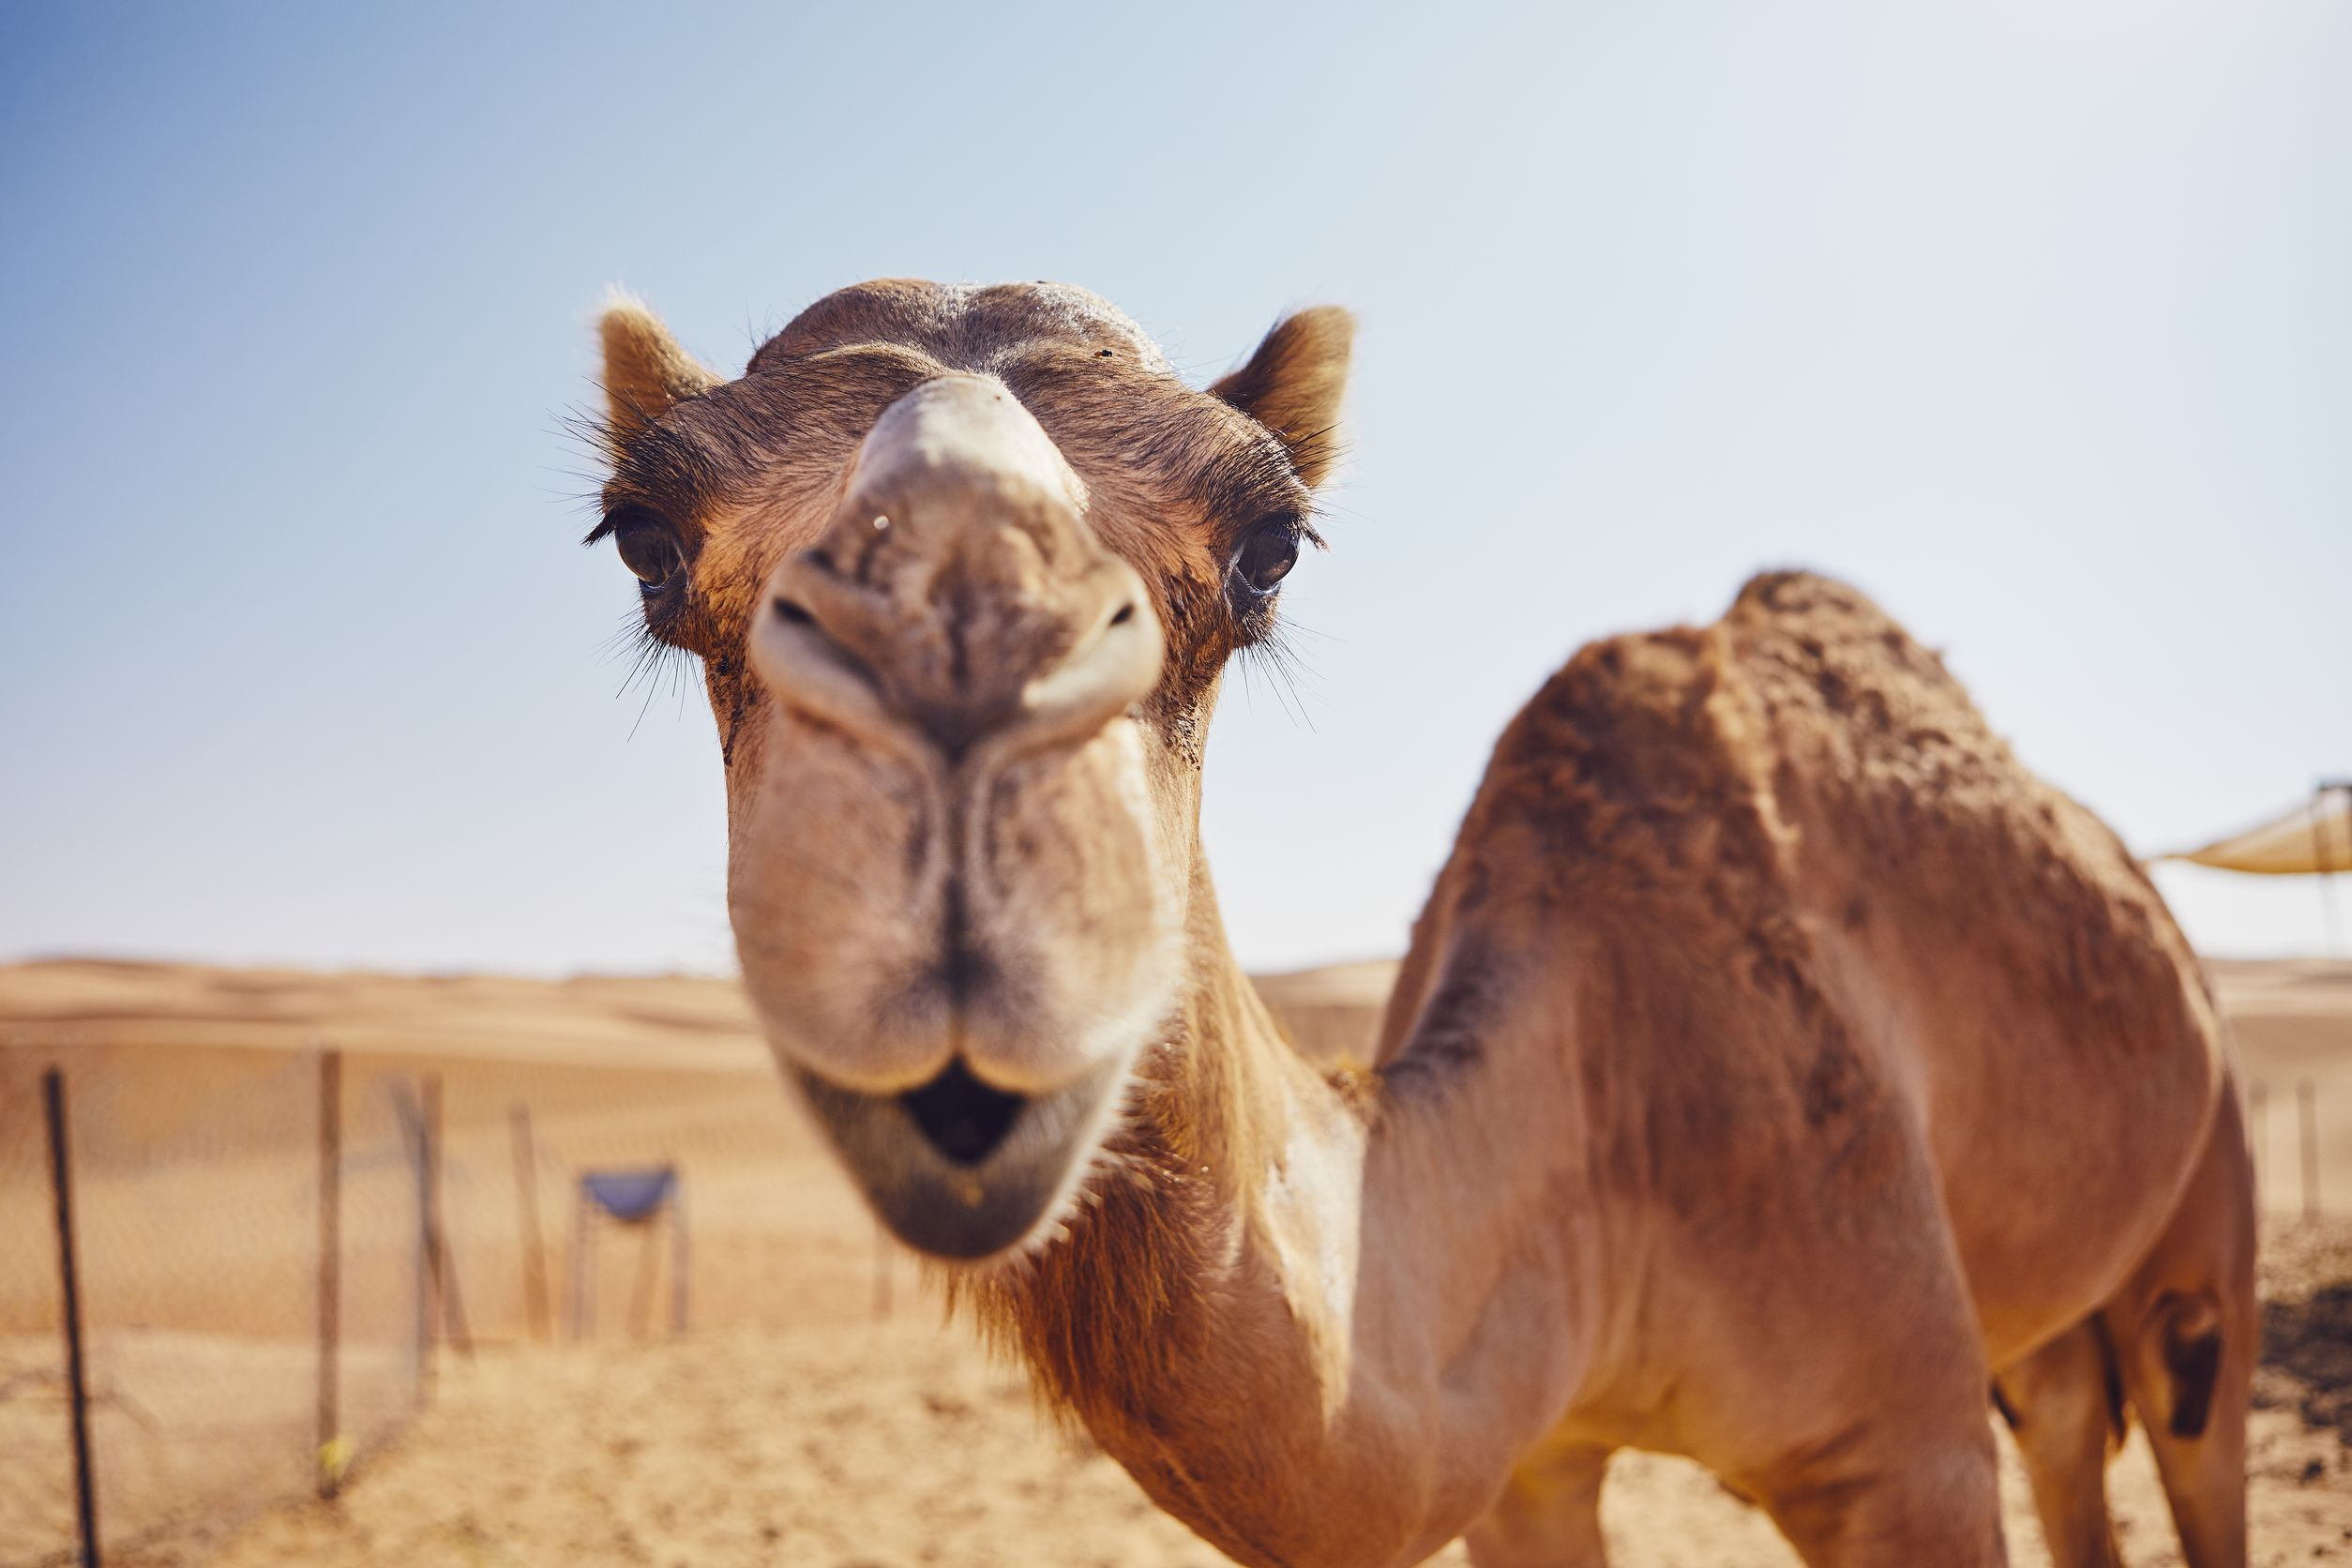 Curious camel in desert